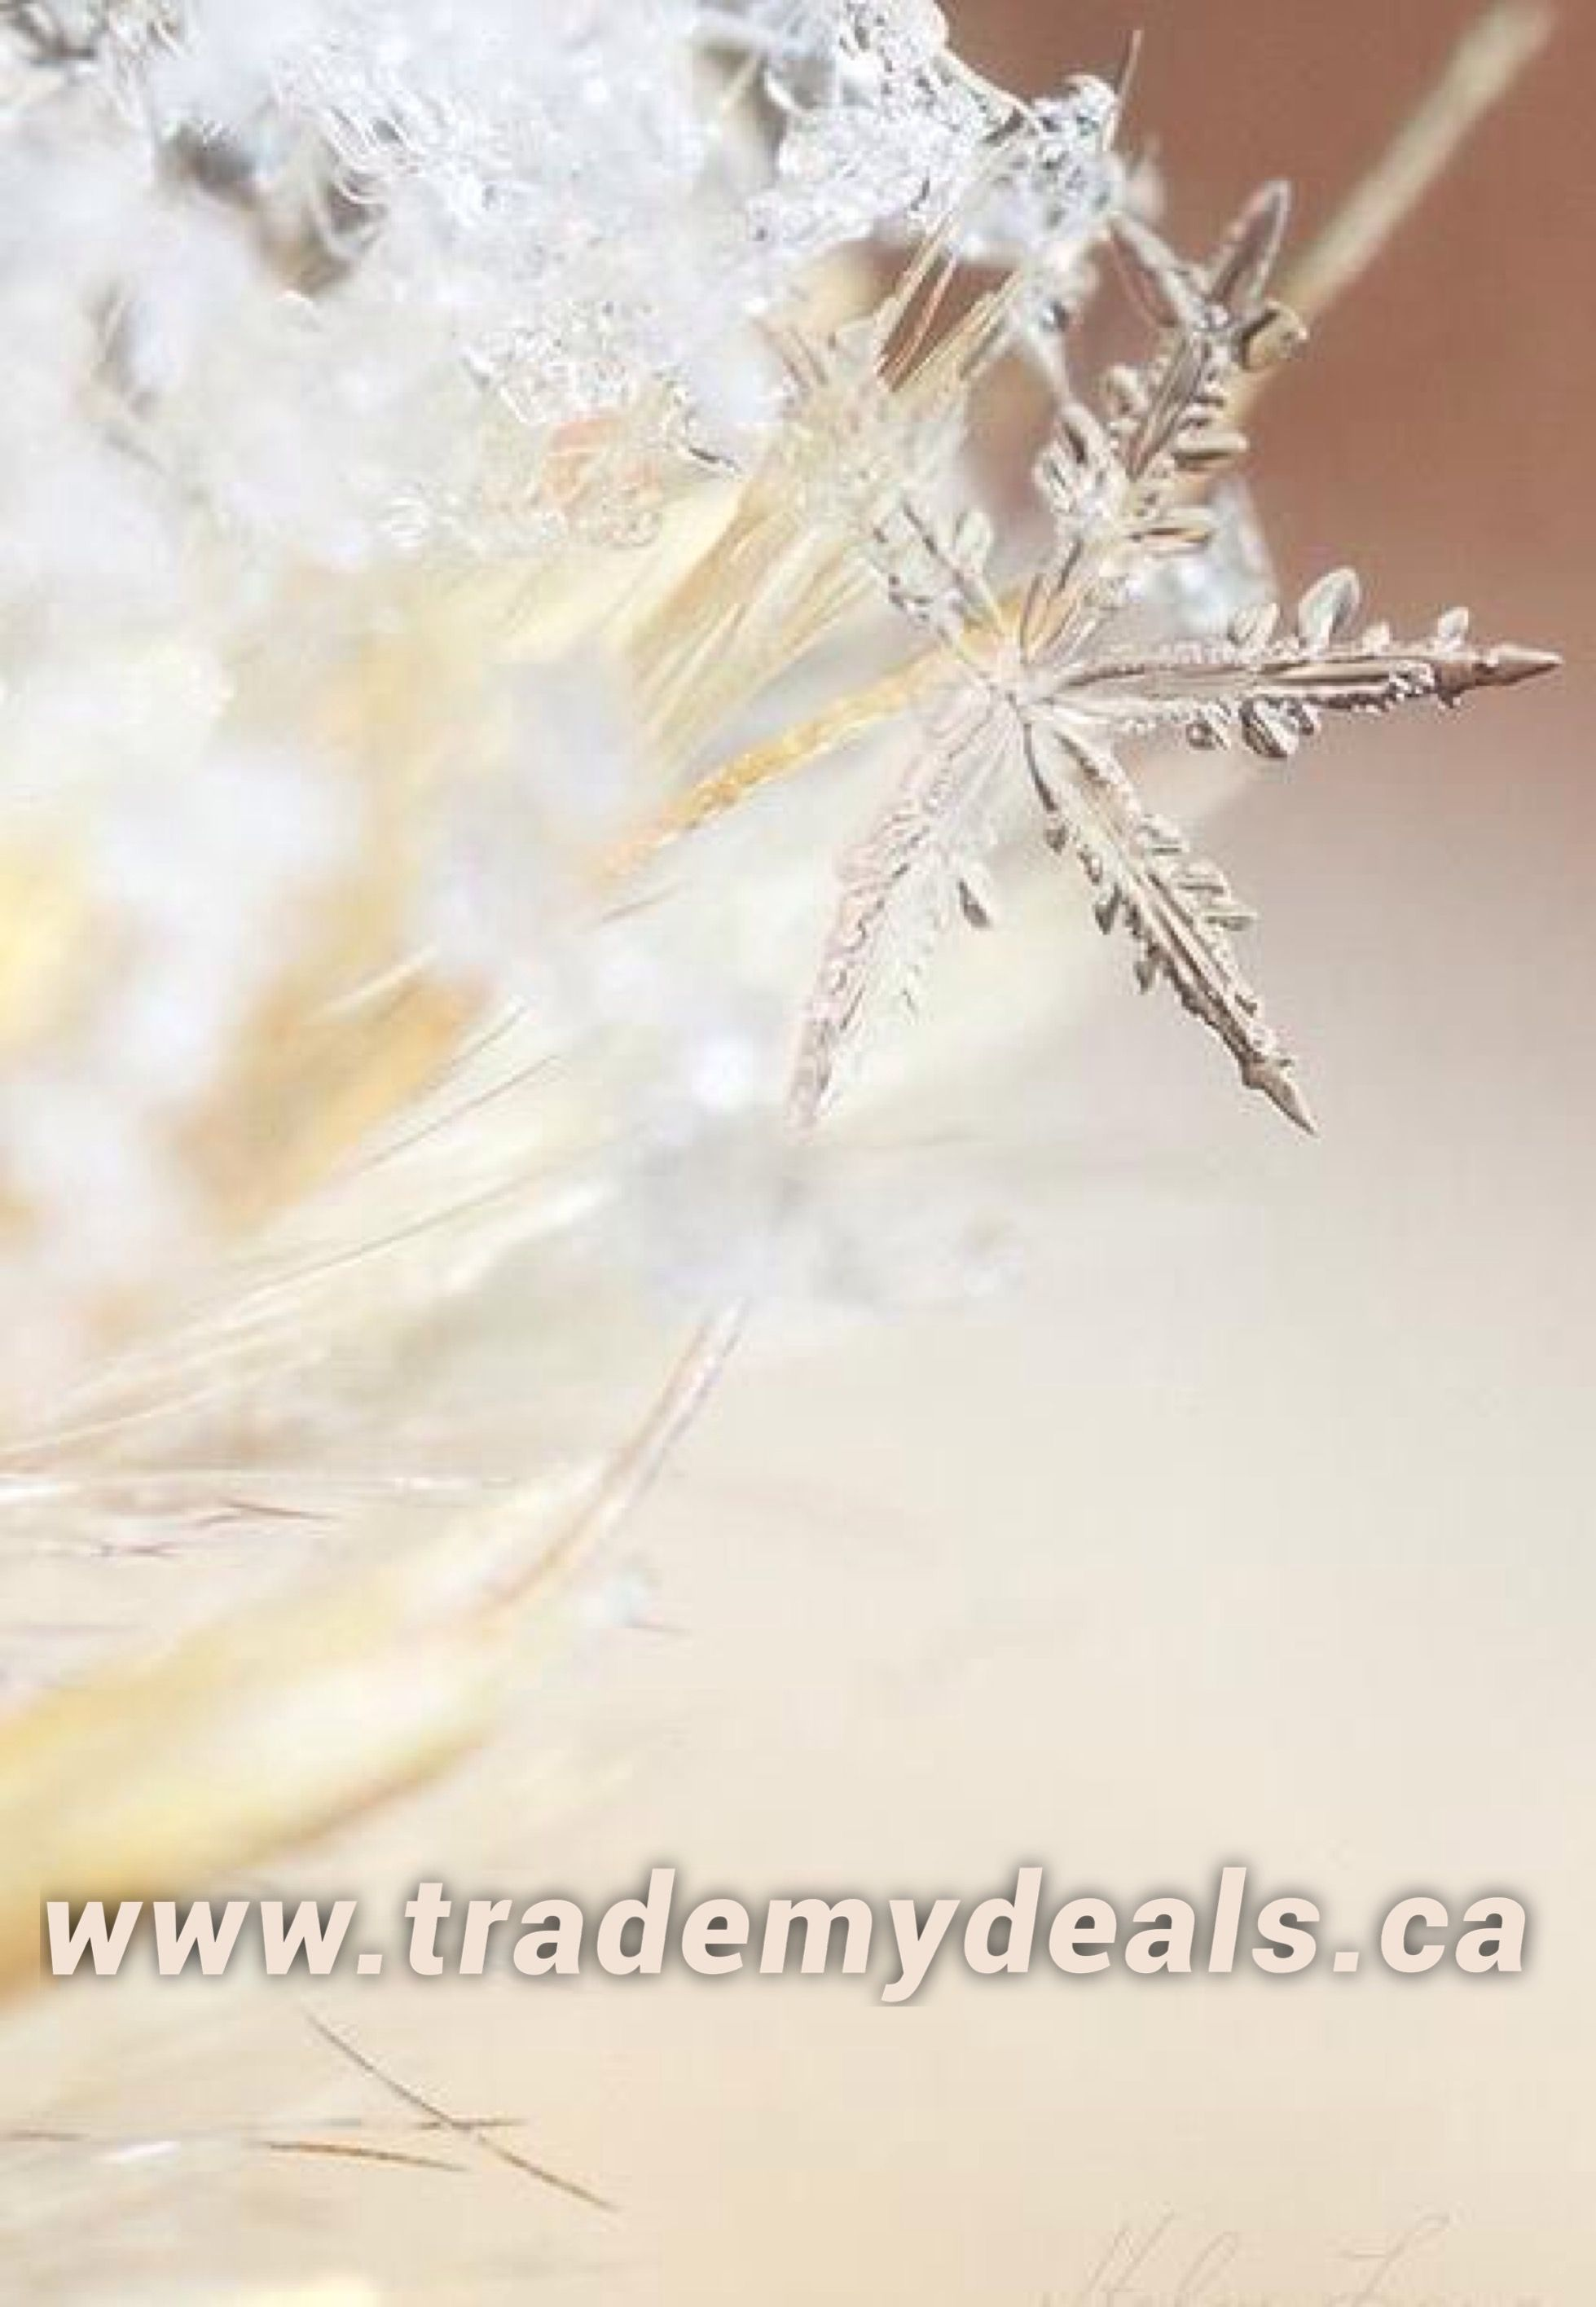 Save on shopping, find your daily discount codes and deals from top retailers on trademydeals.ca  Daily updated!